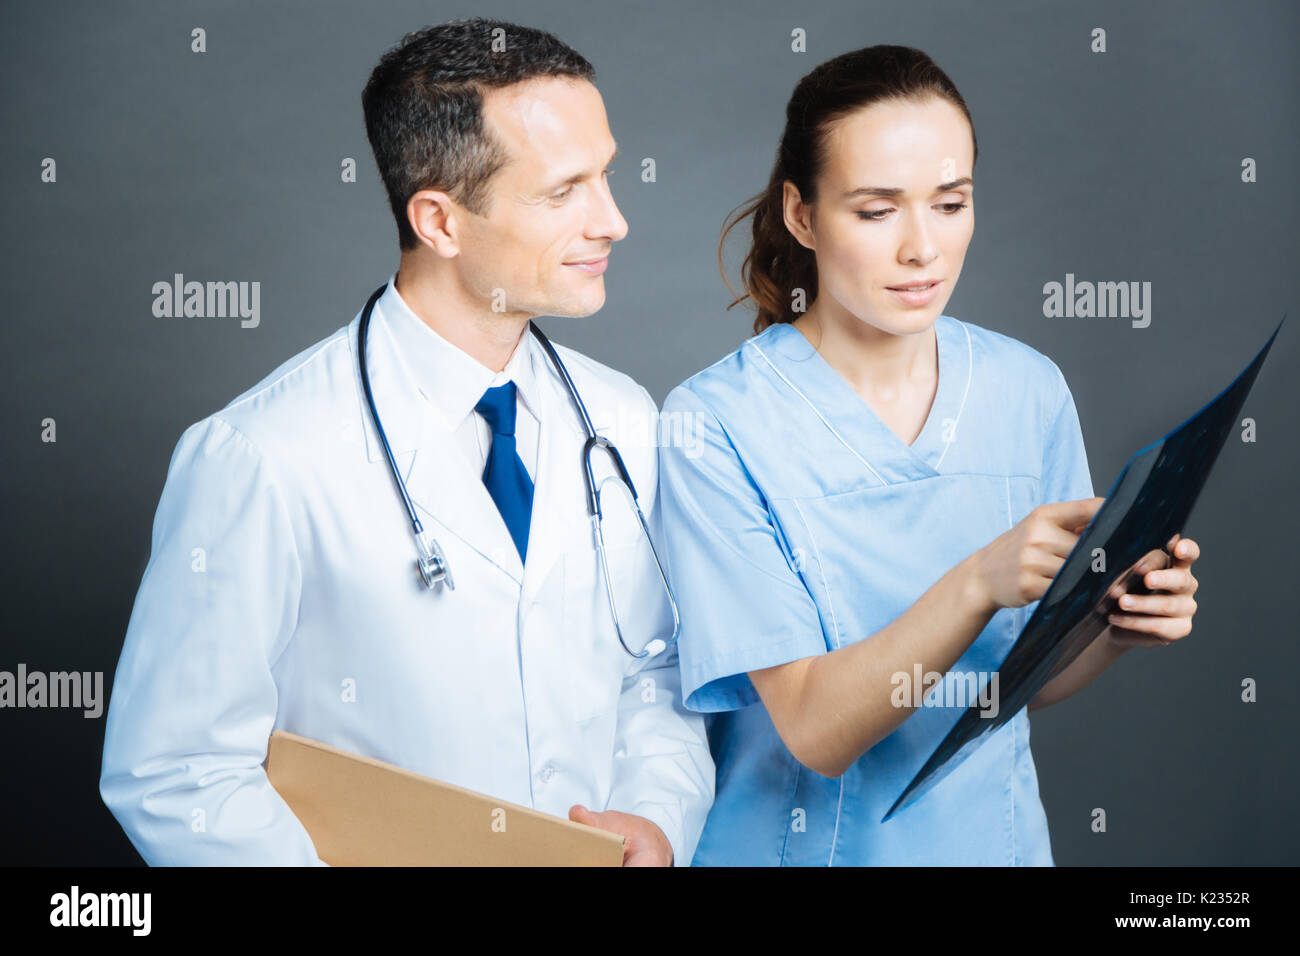 Experienced practitioners chatting over mri scan of patient brain - Stock Image